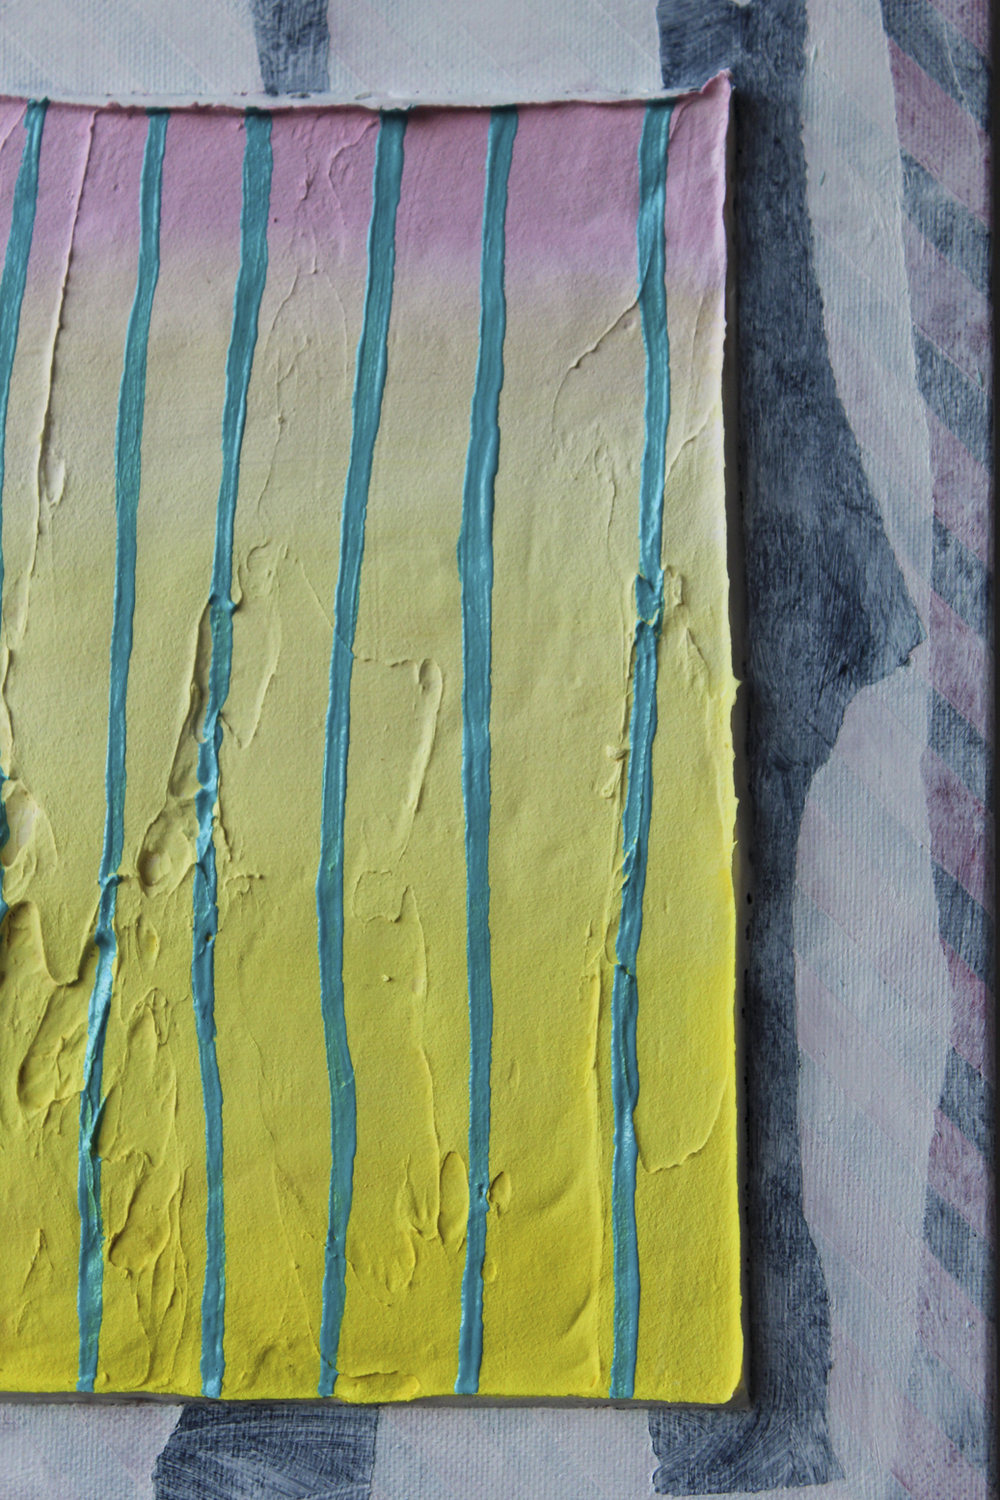 Untitled(Sunset on Wall)-detail-2015-nmn-web.jpg